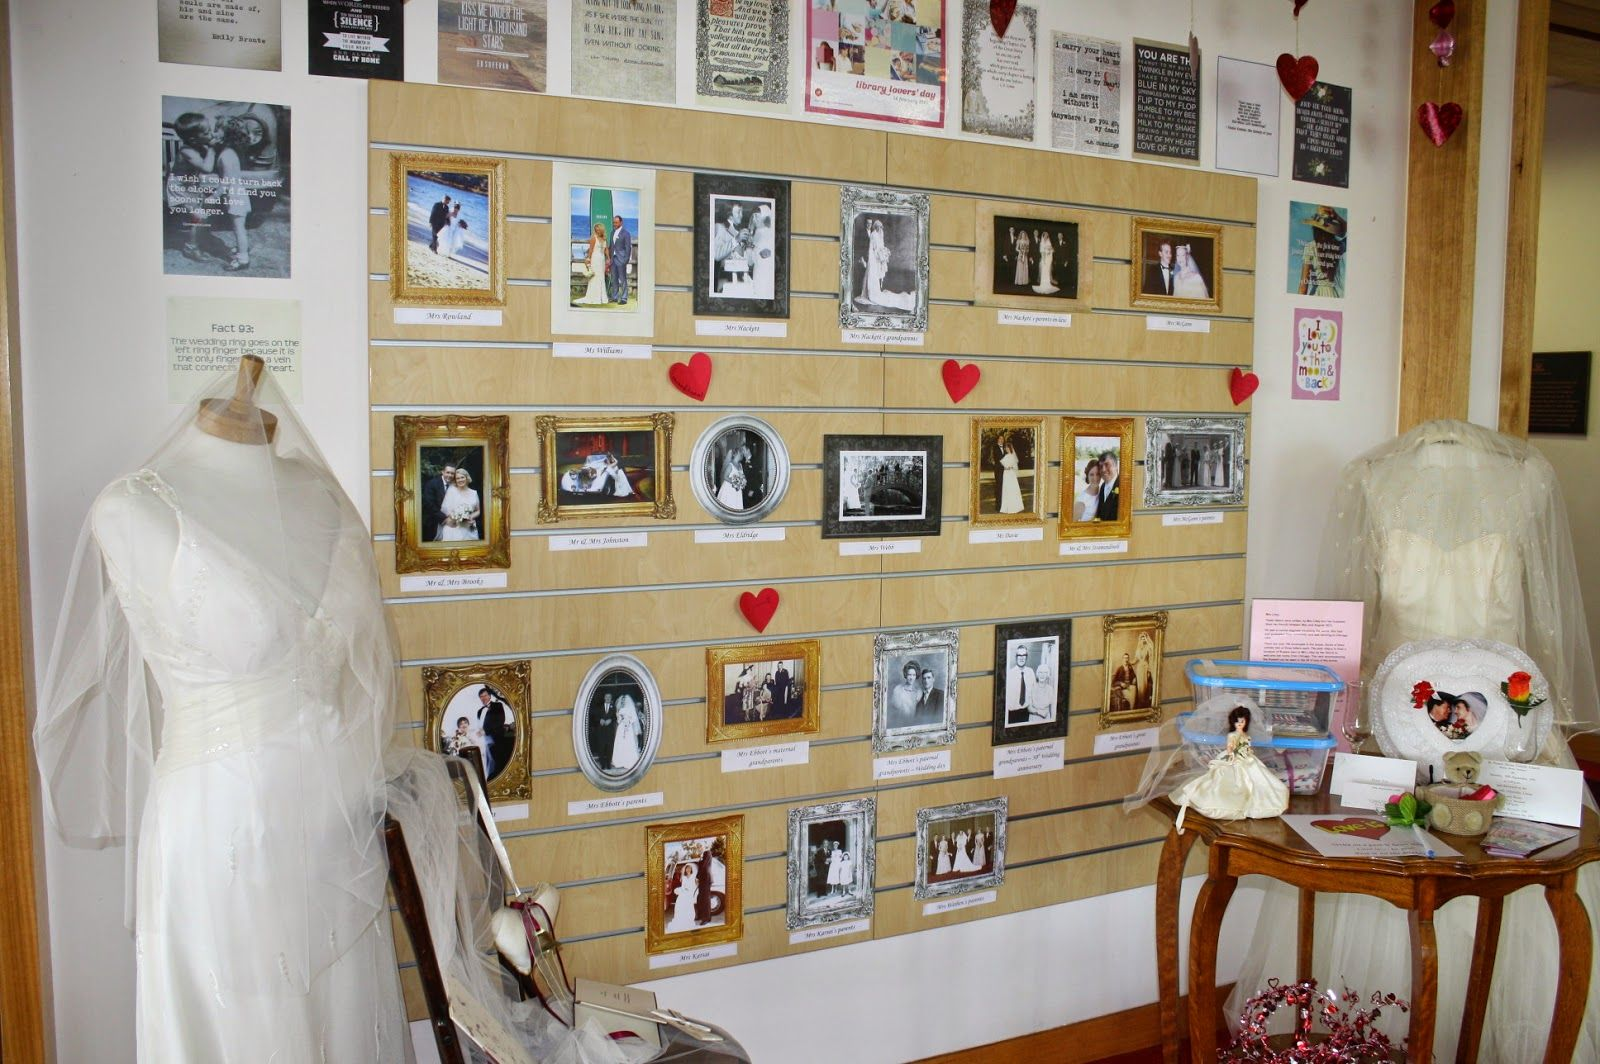 Valentine display pictures of married staff members and small story